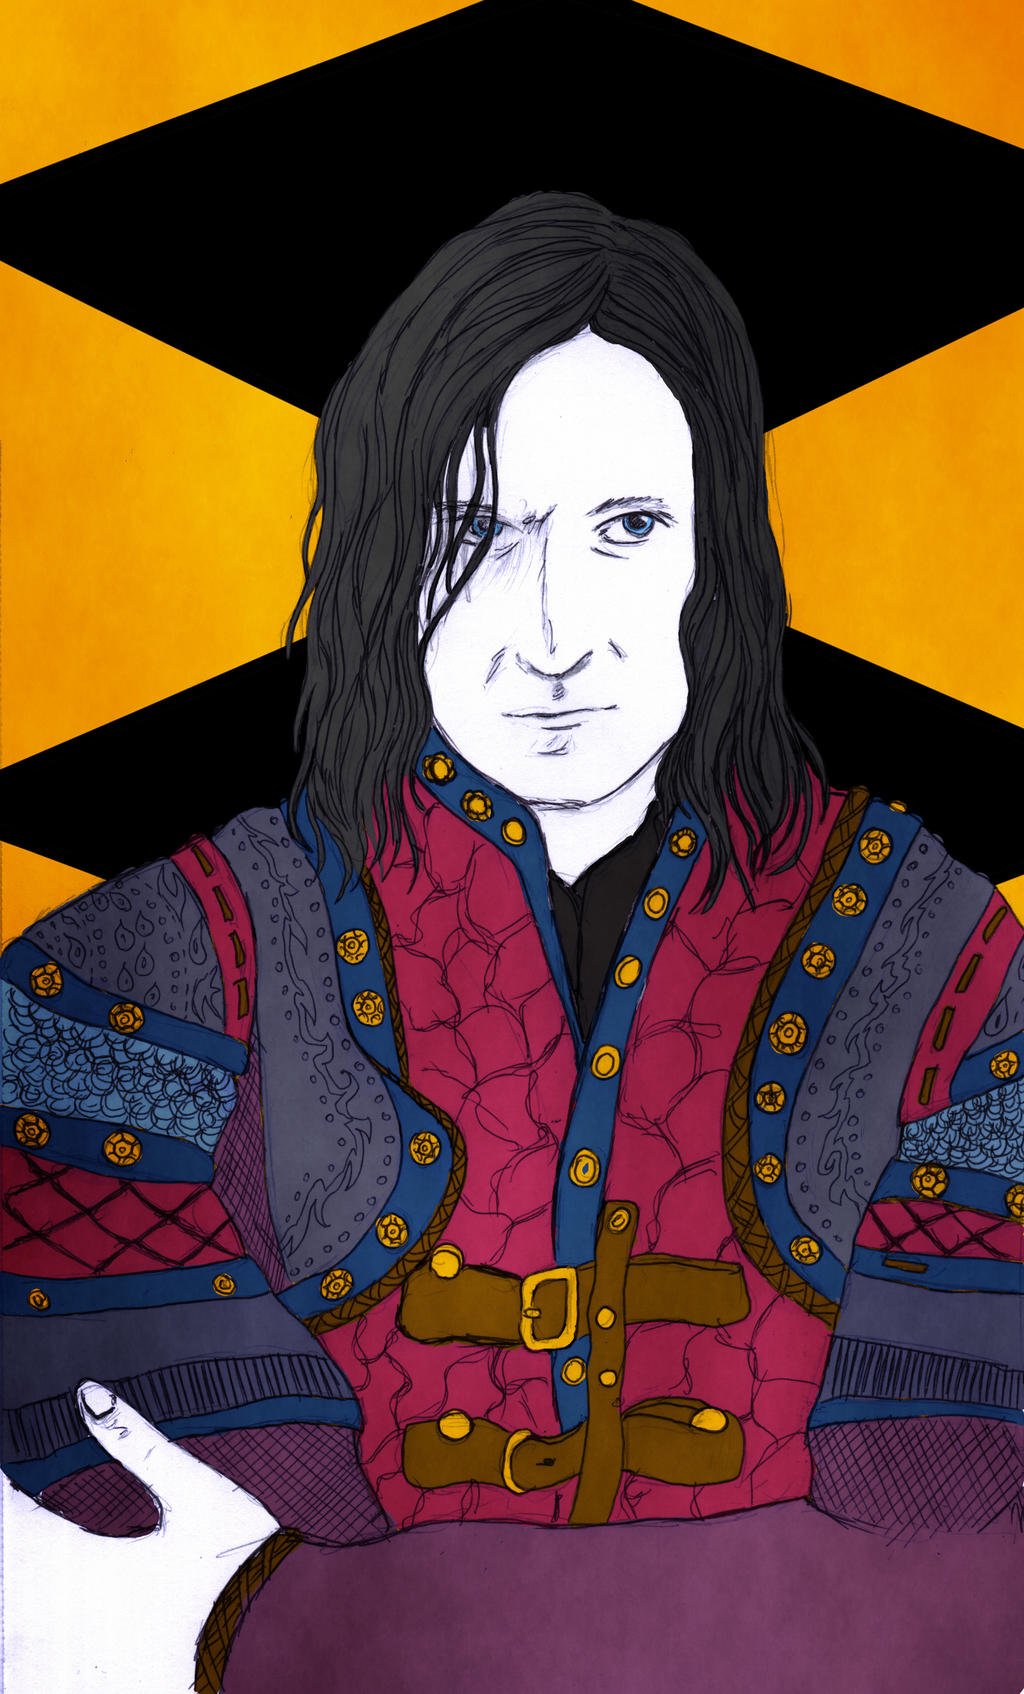 Sir Guy of Gisborne by eugeal